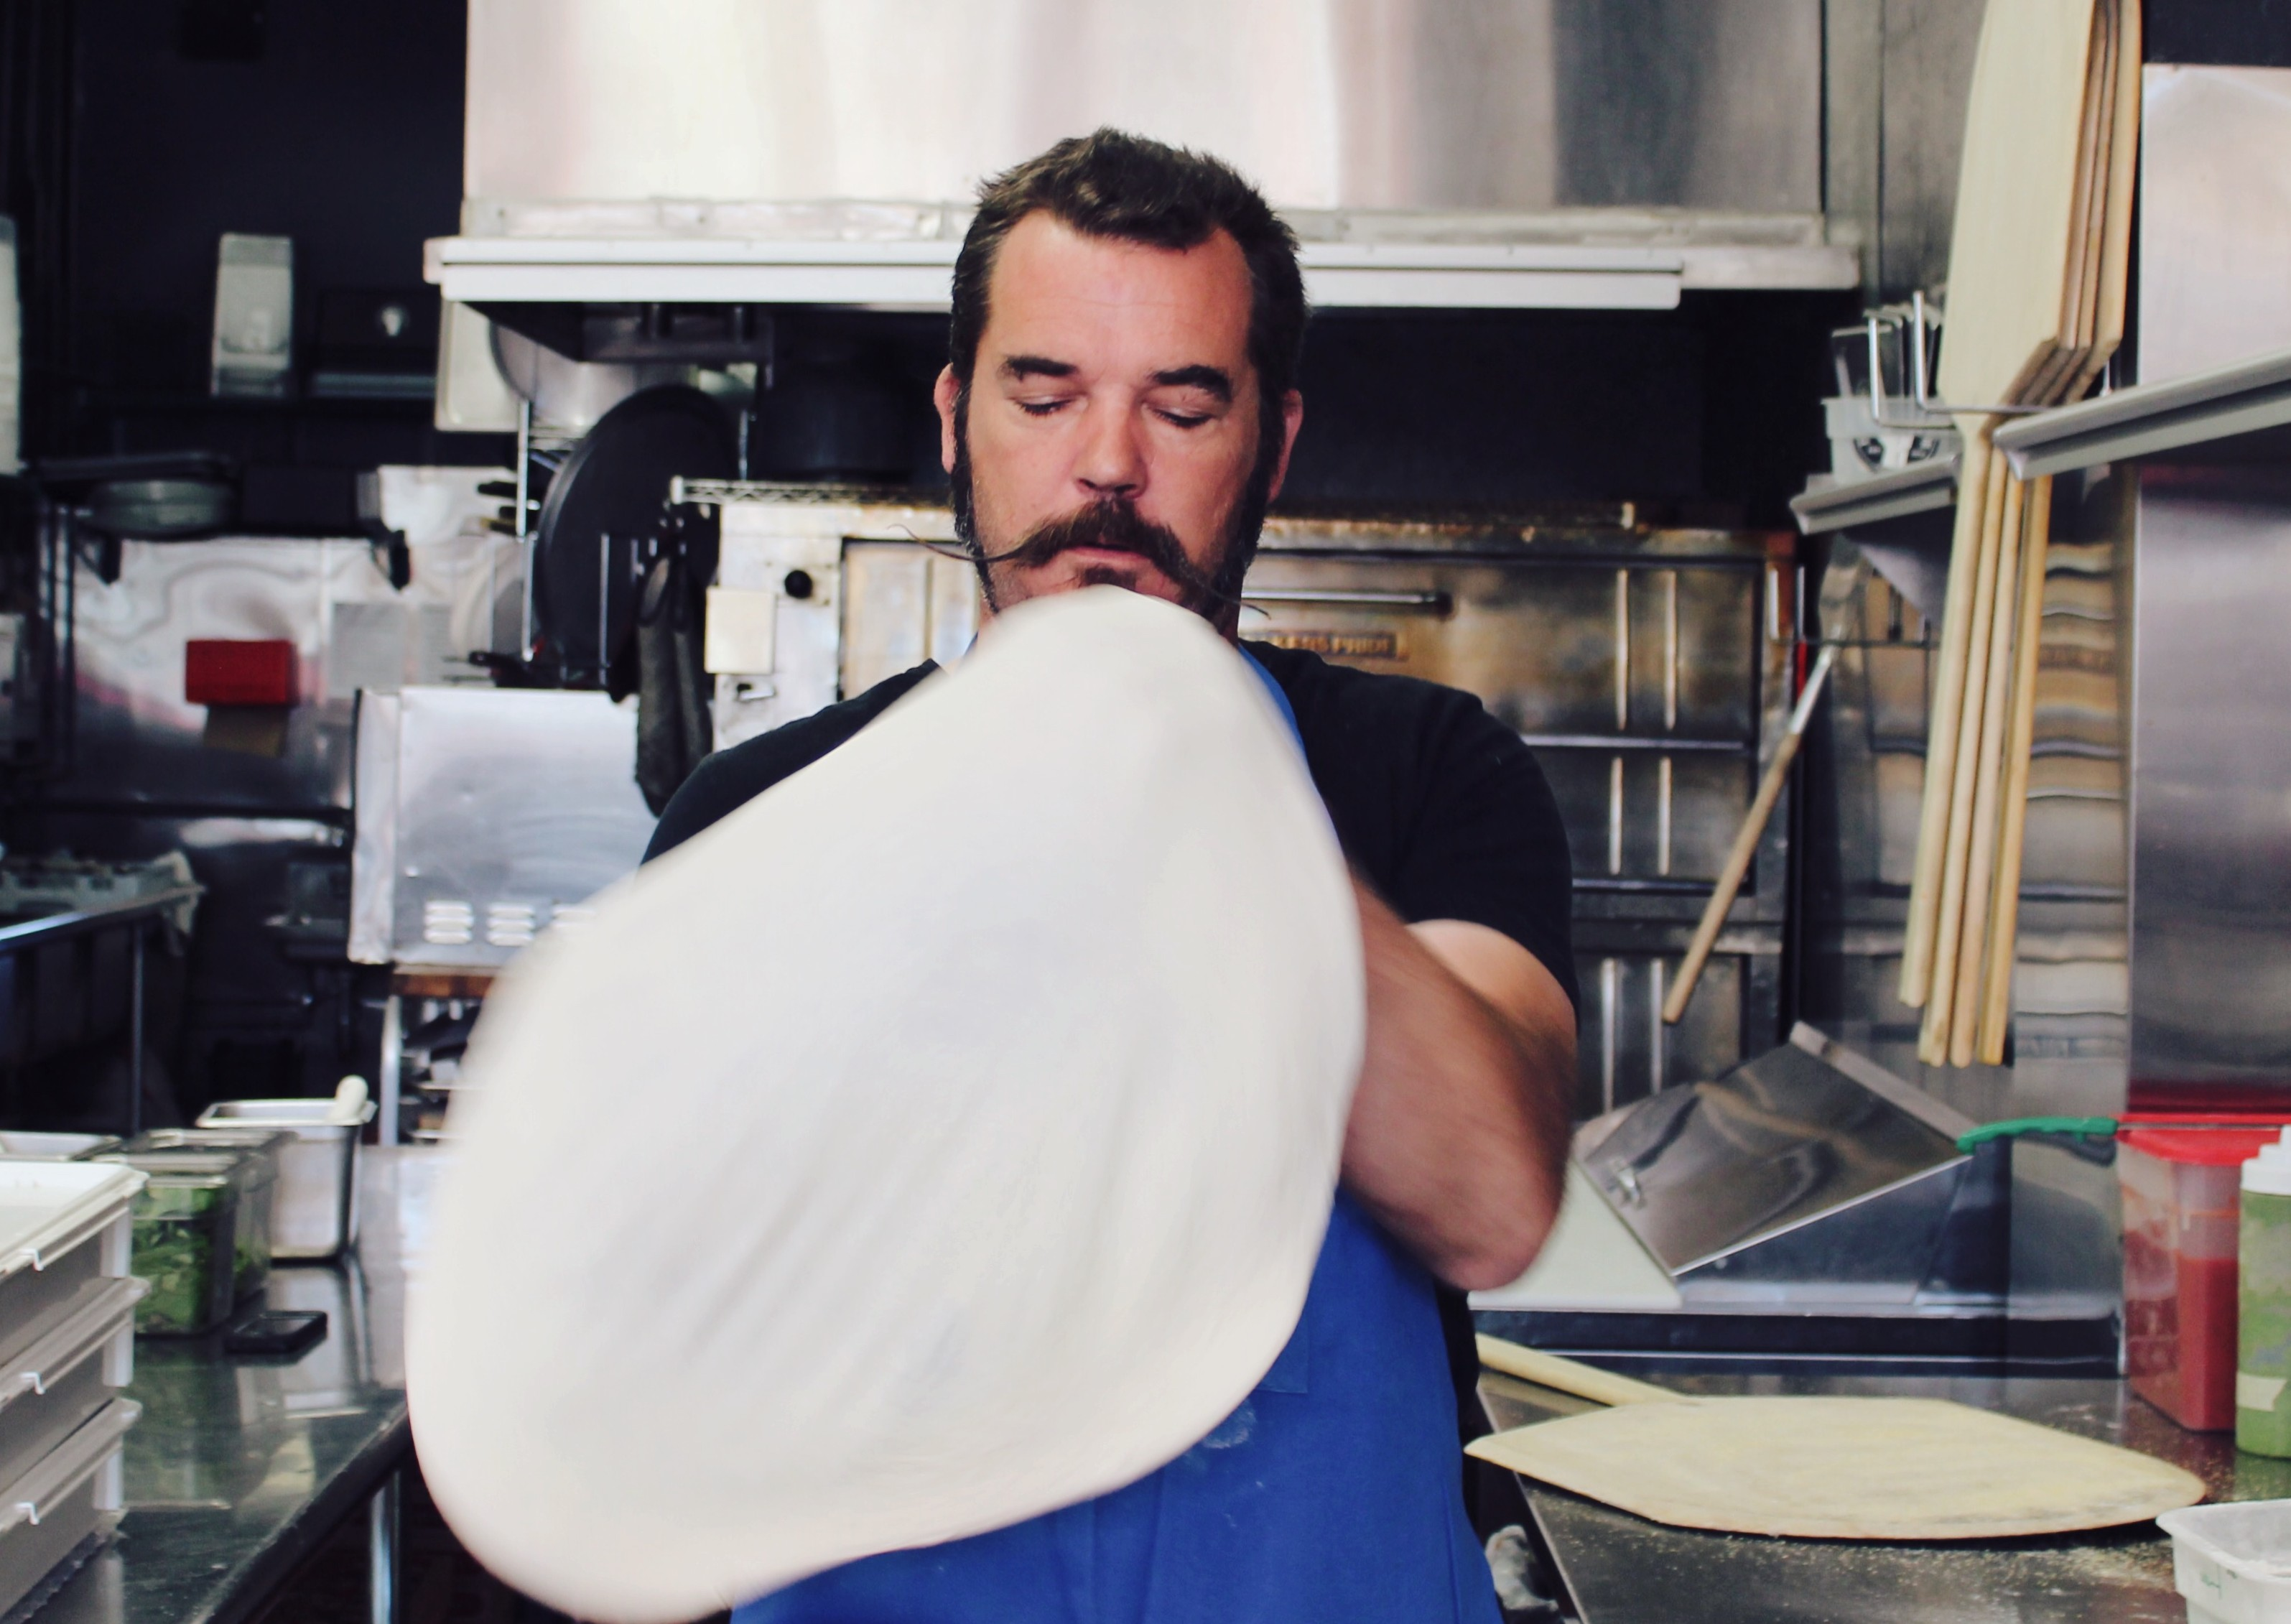 Owner James Whitehead tossing fresh pizza dough